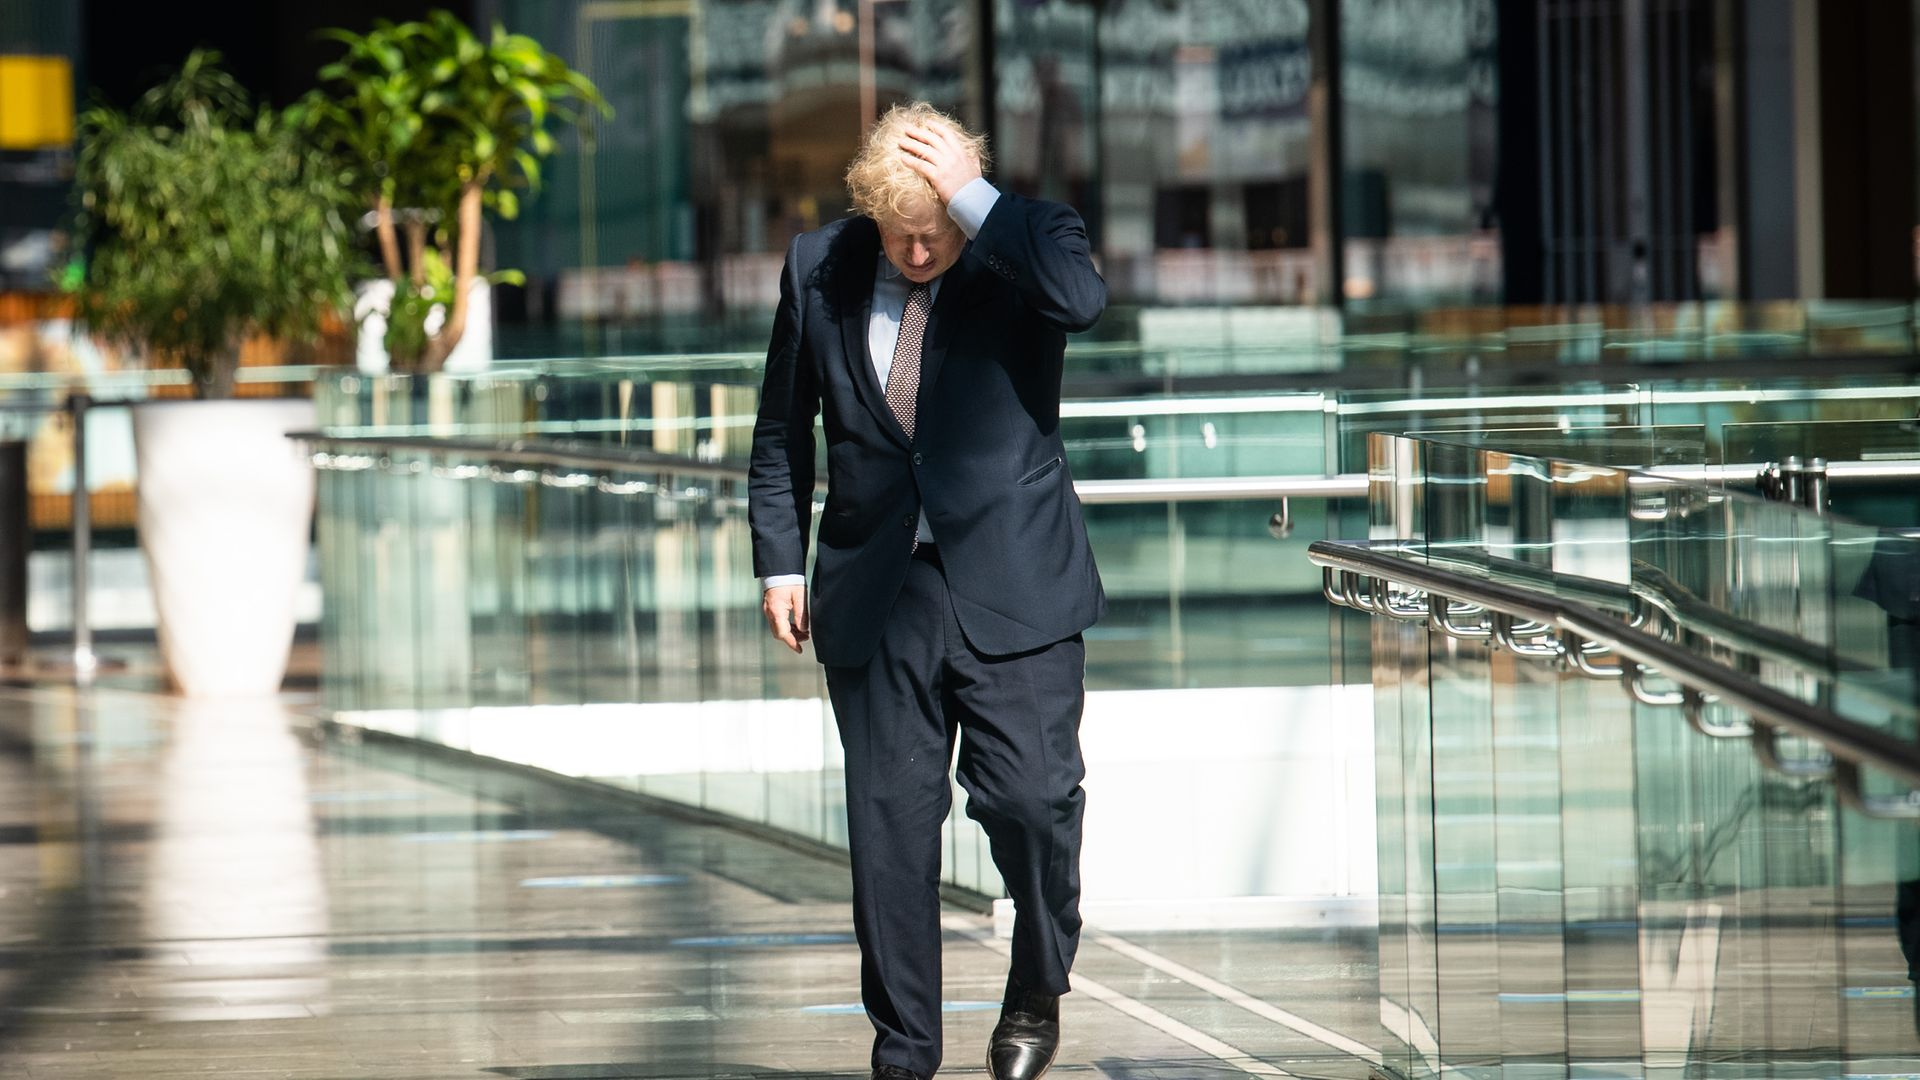 Prime minister Boris Johnson during a visit to Westfield Stratford in east London - Credit: PA